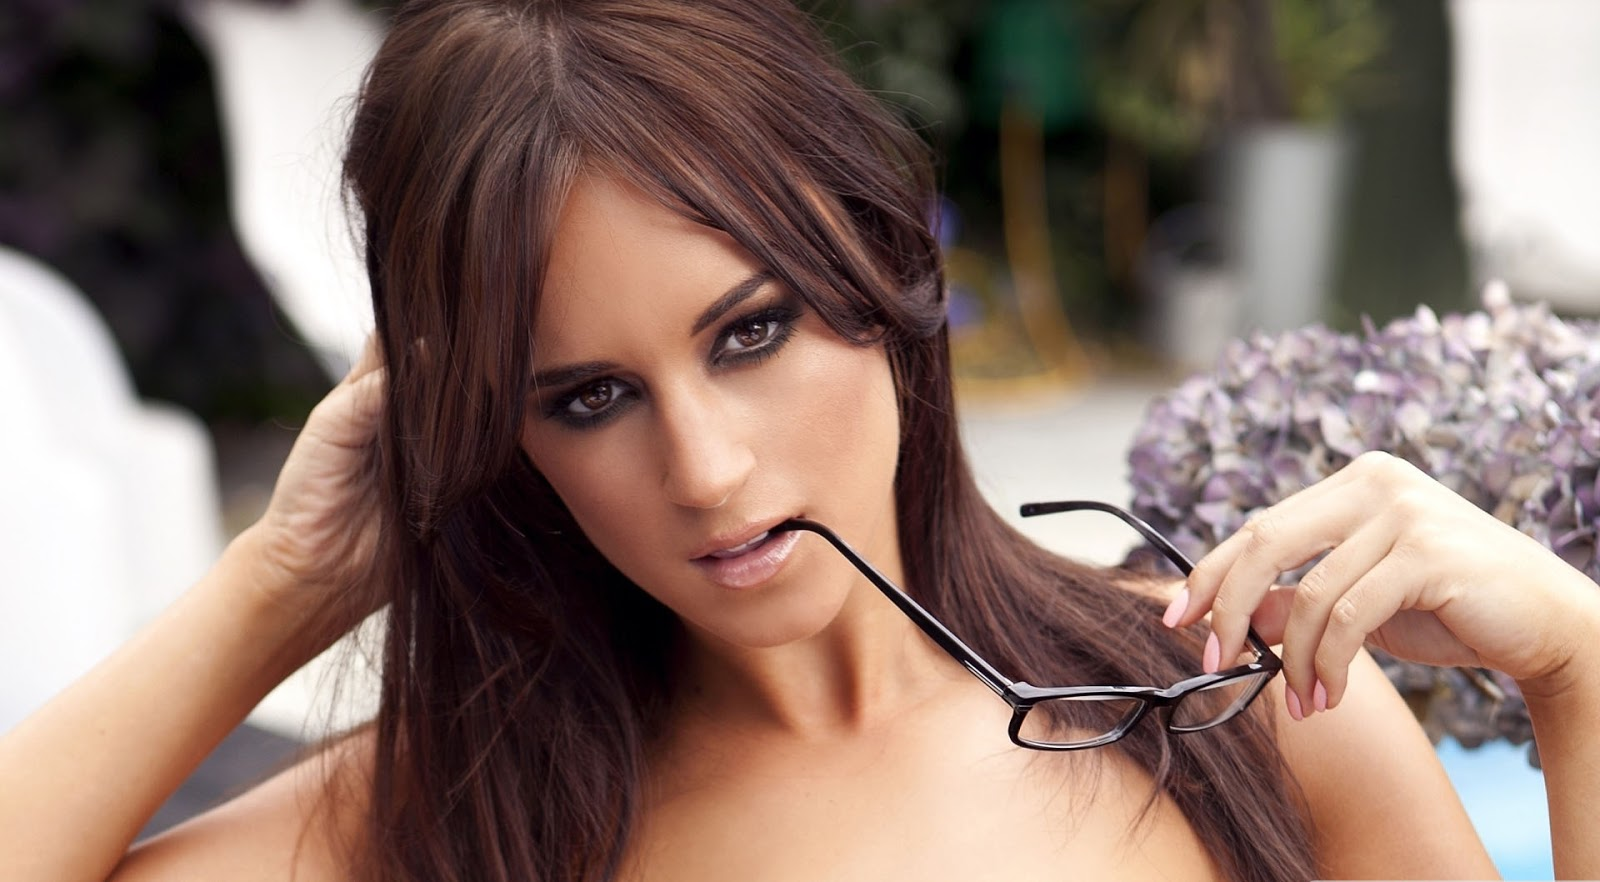 Gta 5 Beach Girl Wallpaper Care We Rosie Jones